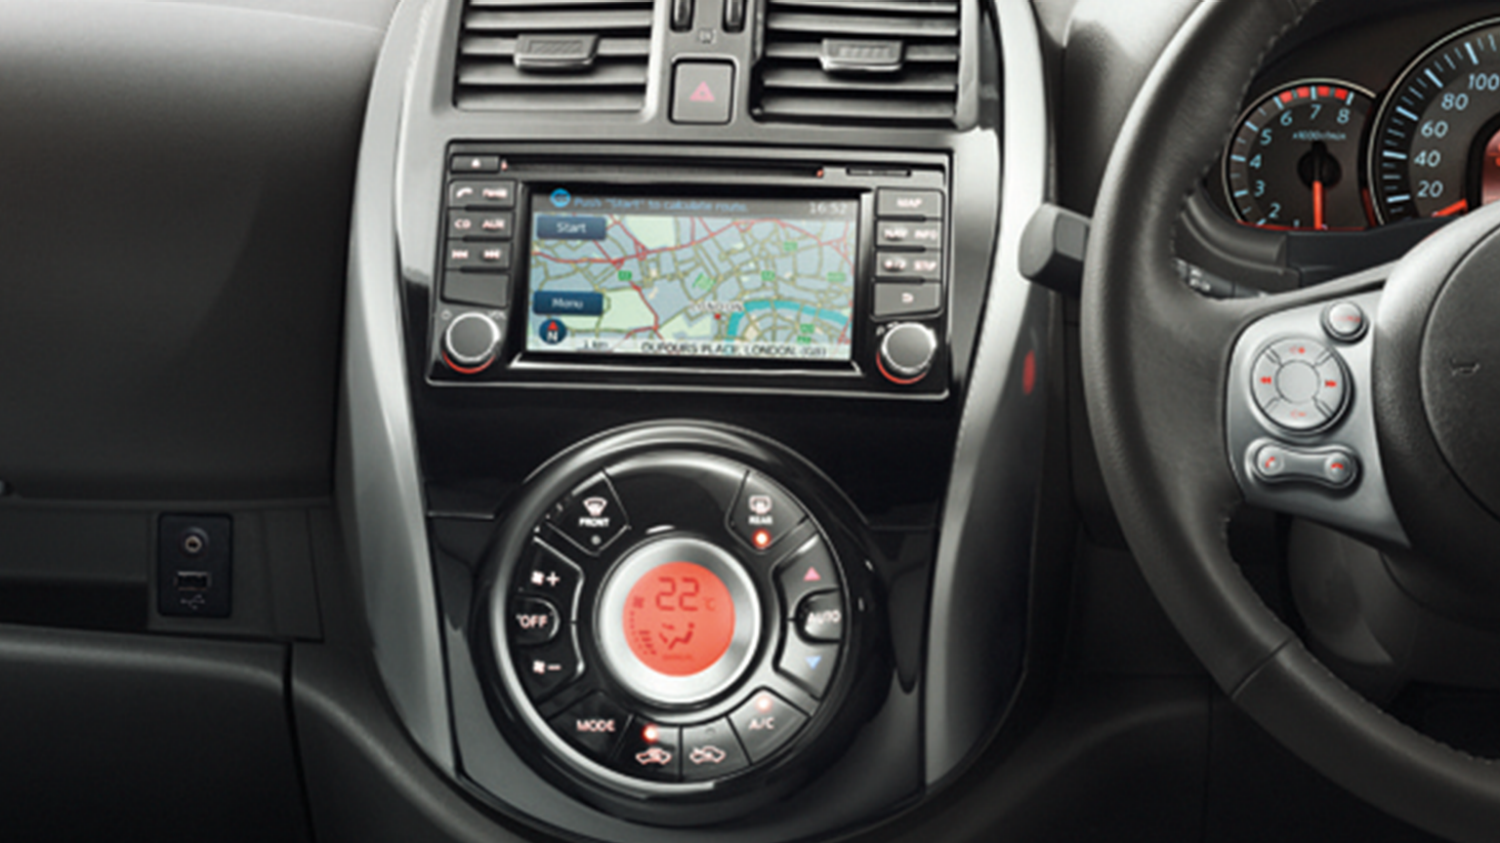 Nissan Micra | Sat nav display